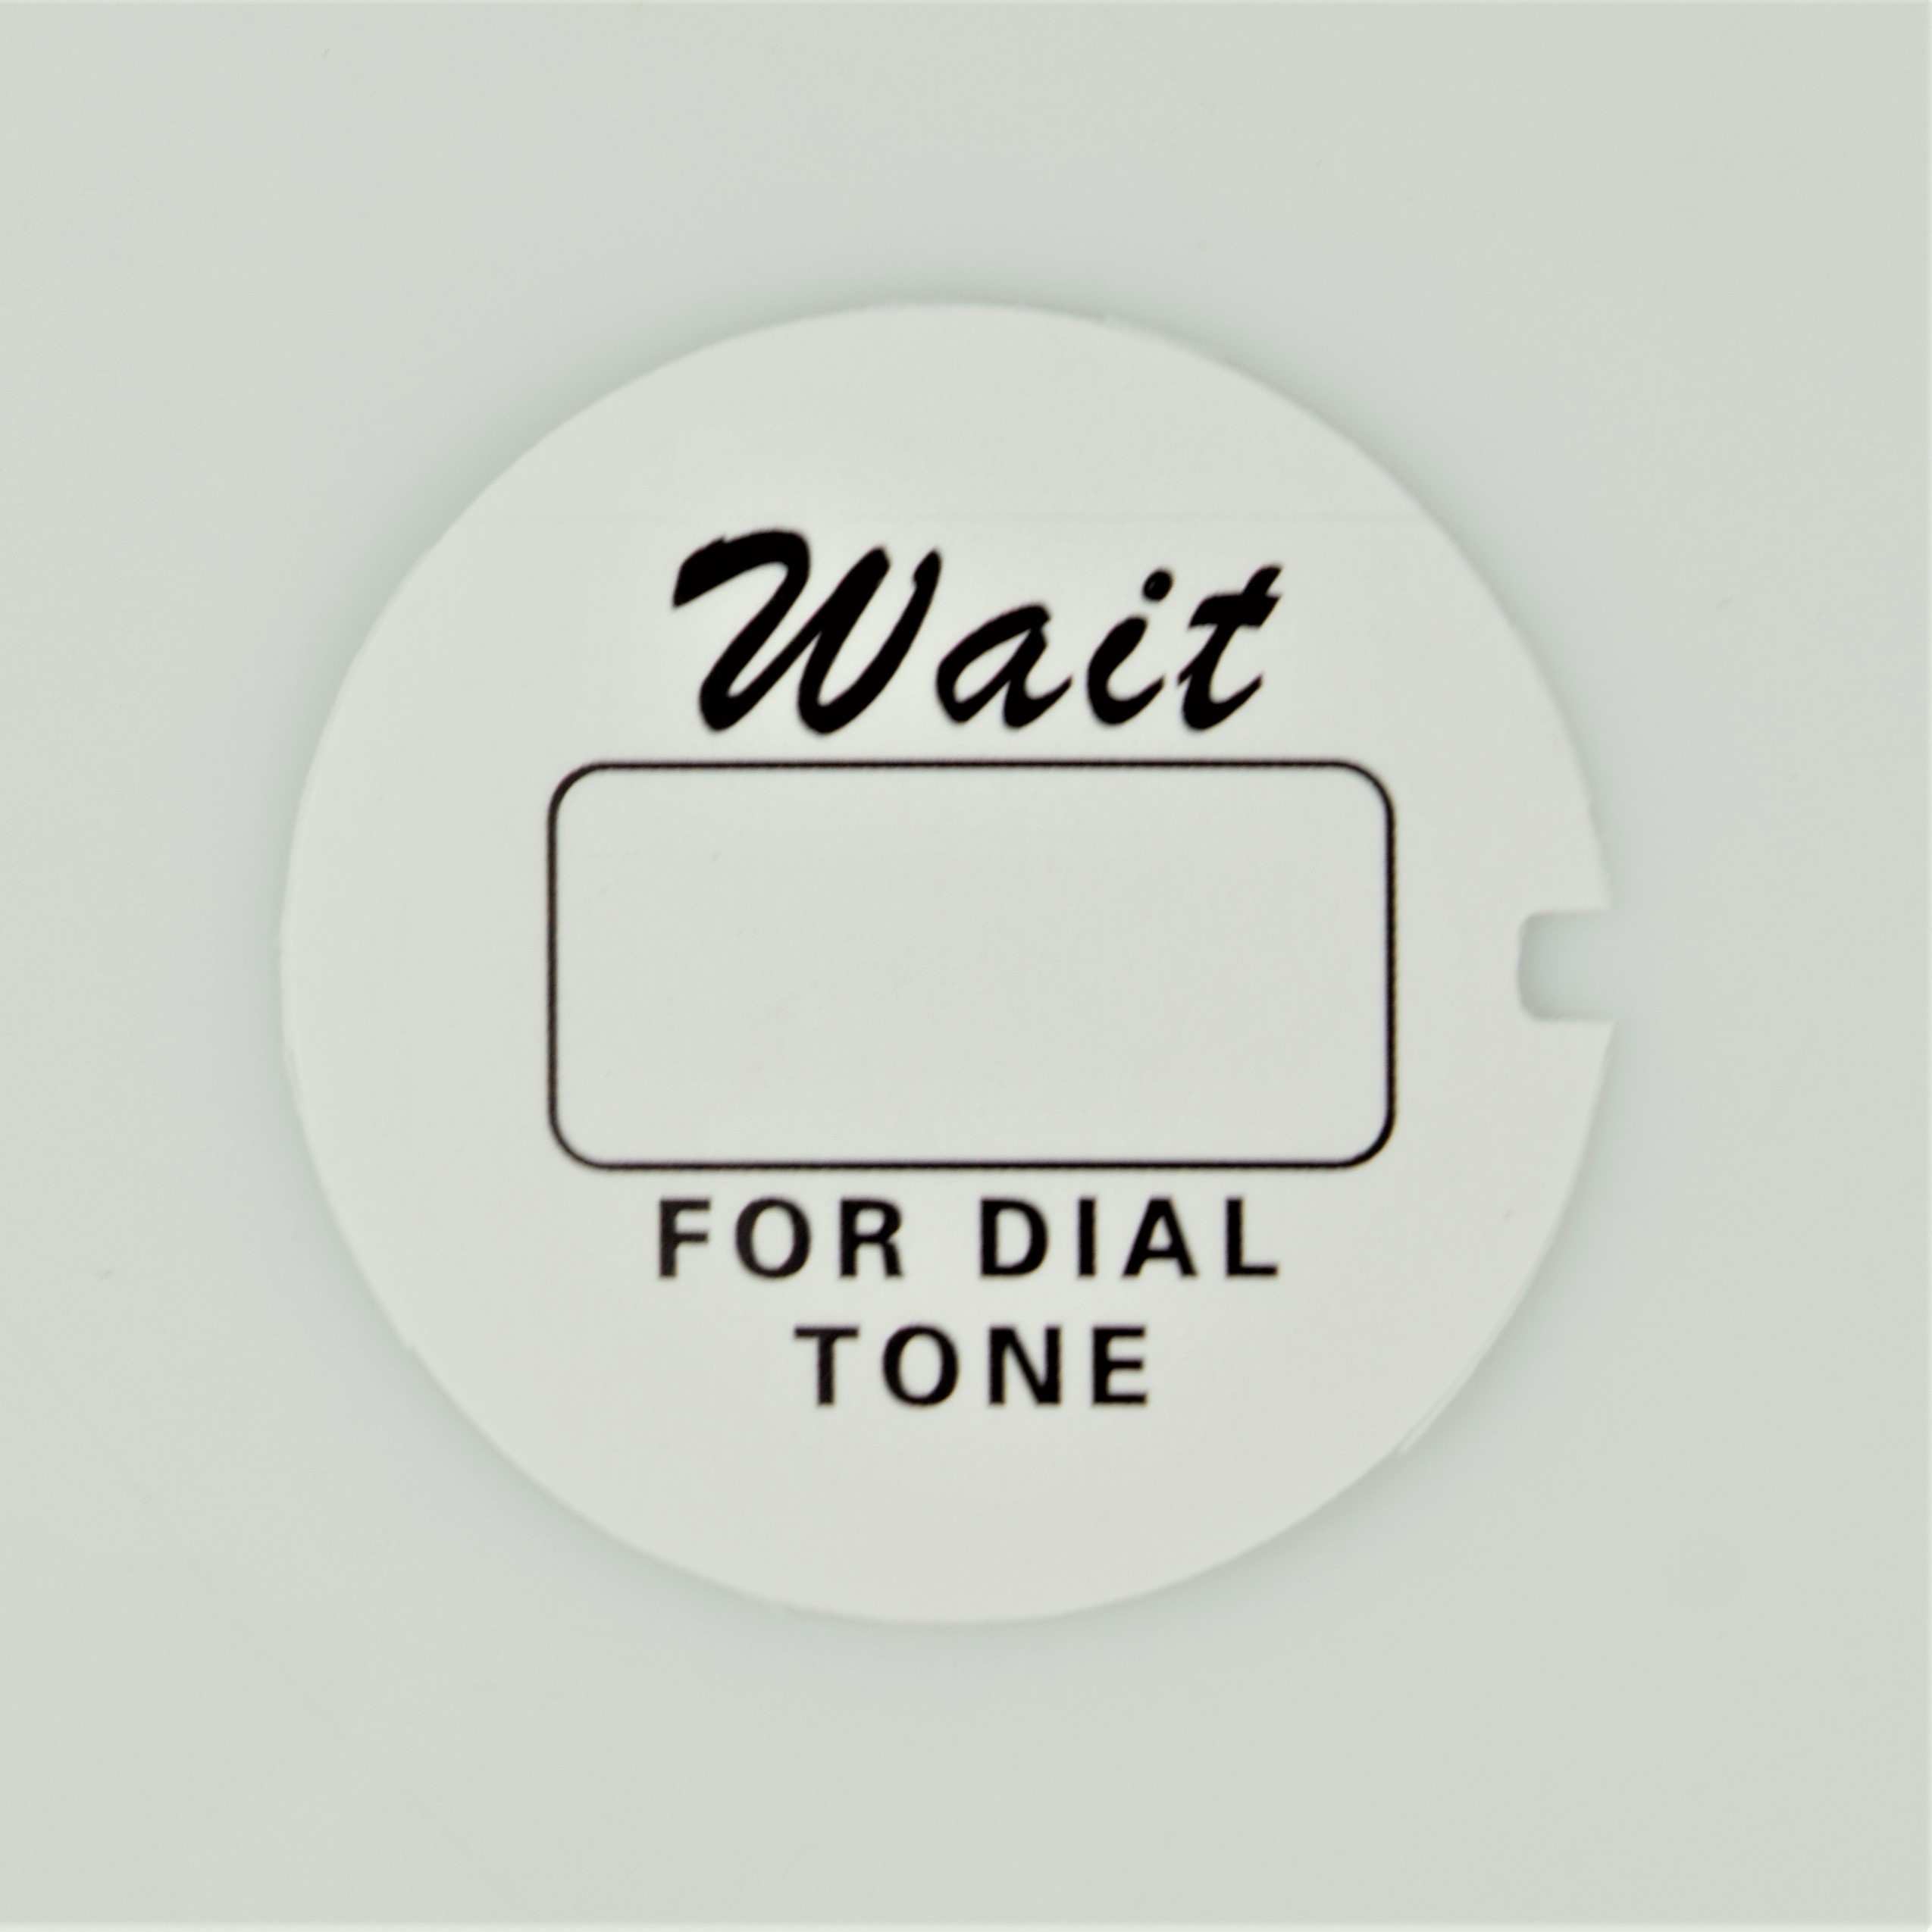 Western Electric Dial Card - White - Script